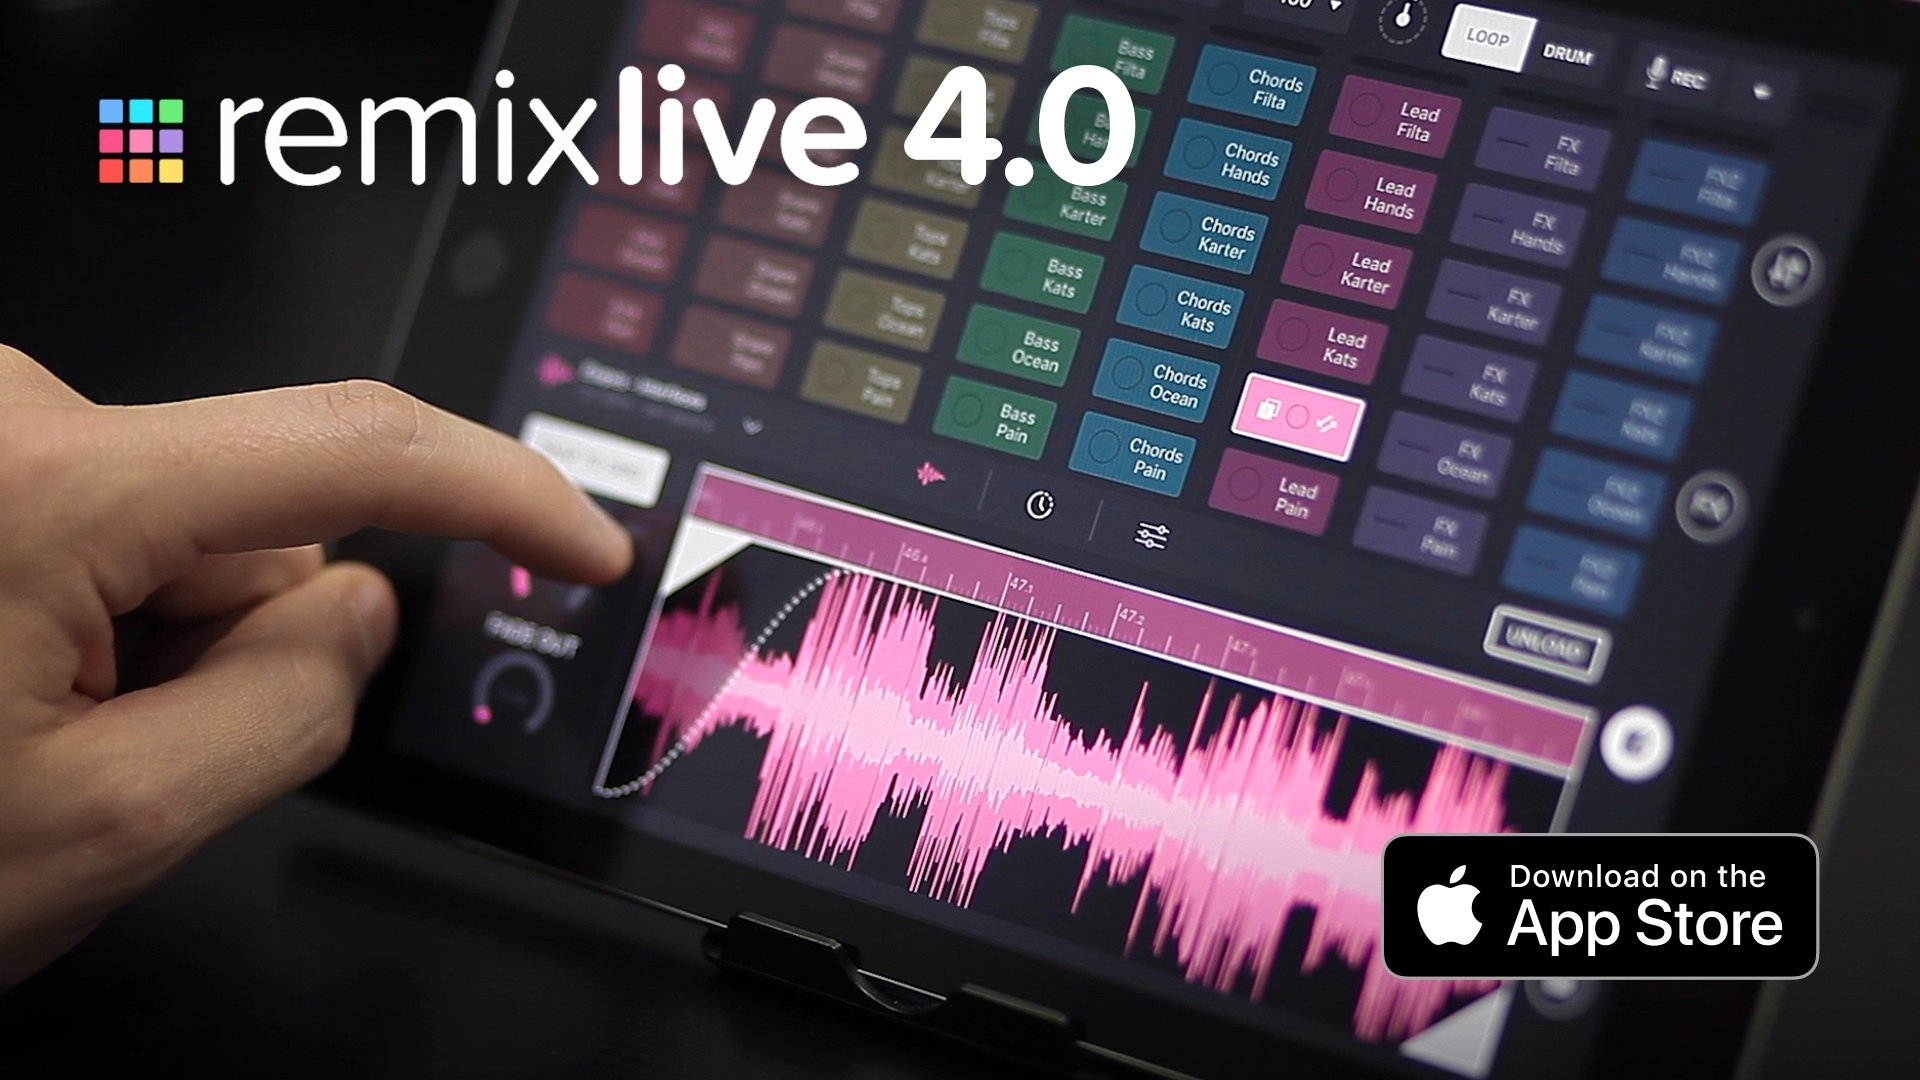 Mixvibes Remixlive 4 —play samples and edit them too 6